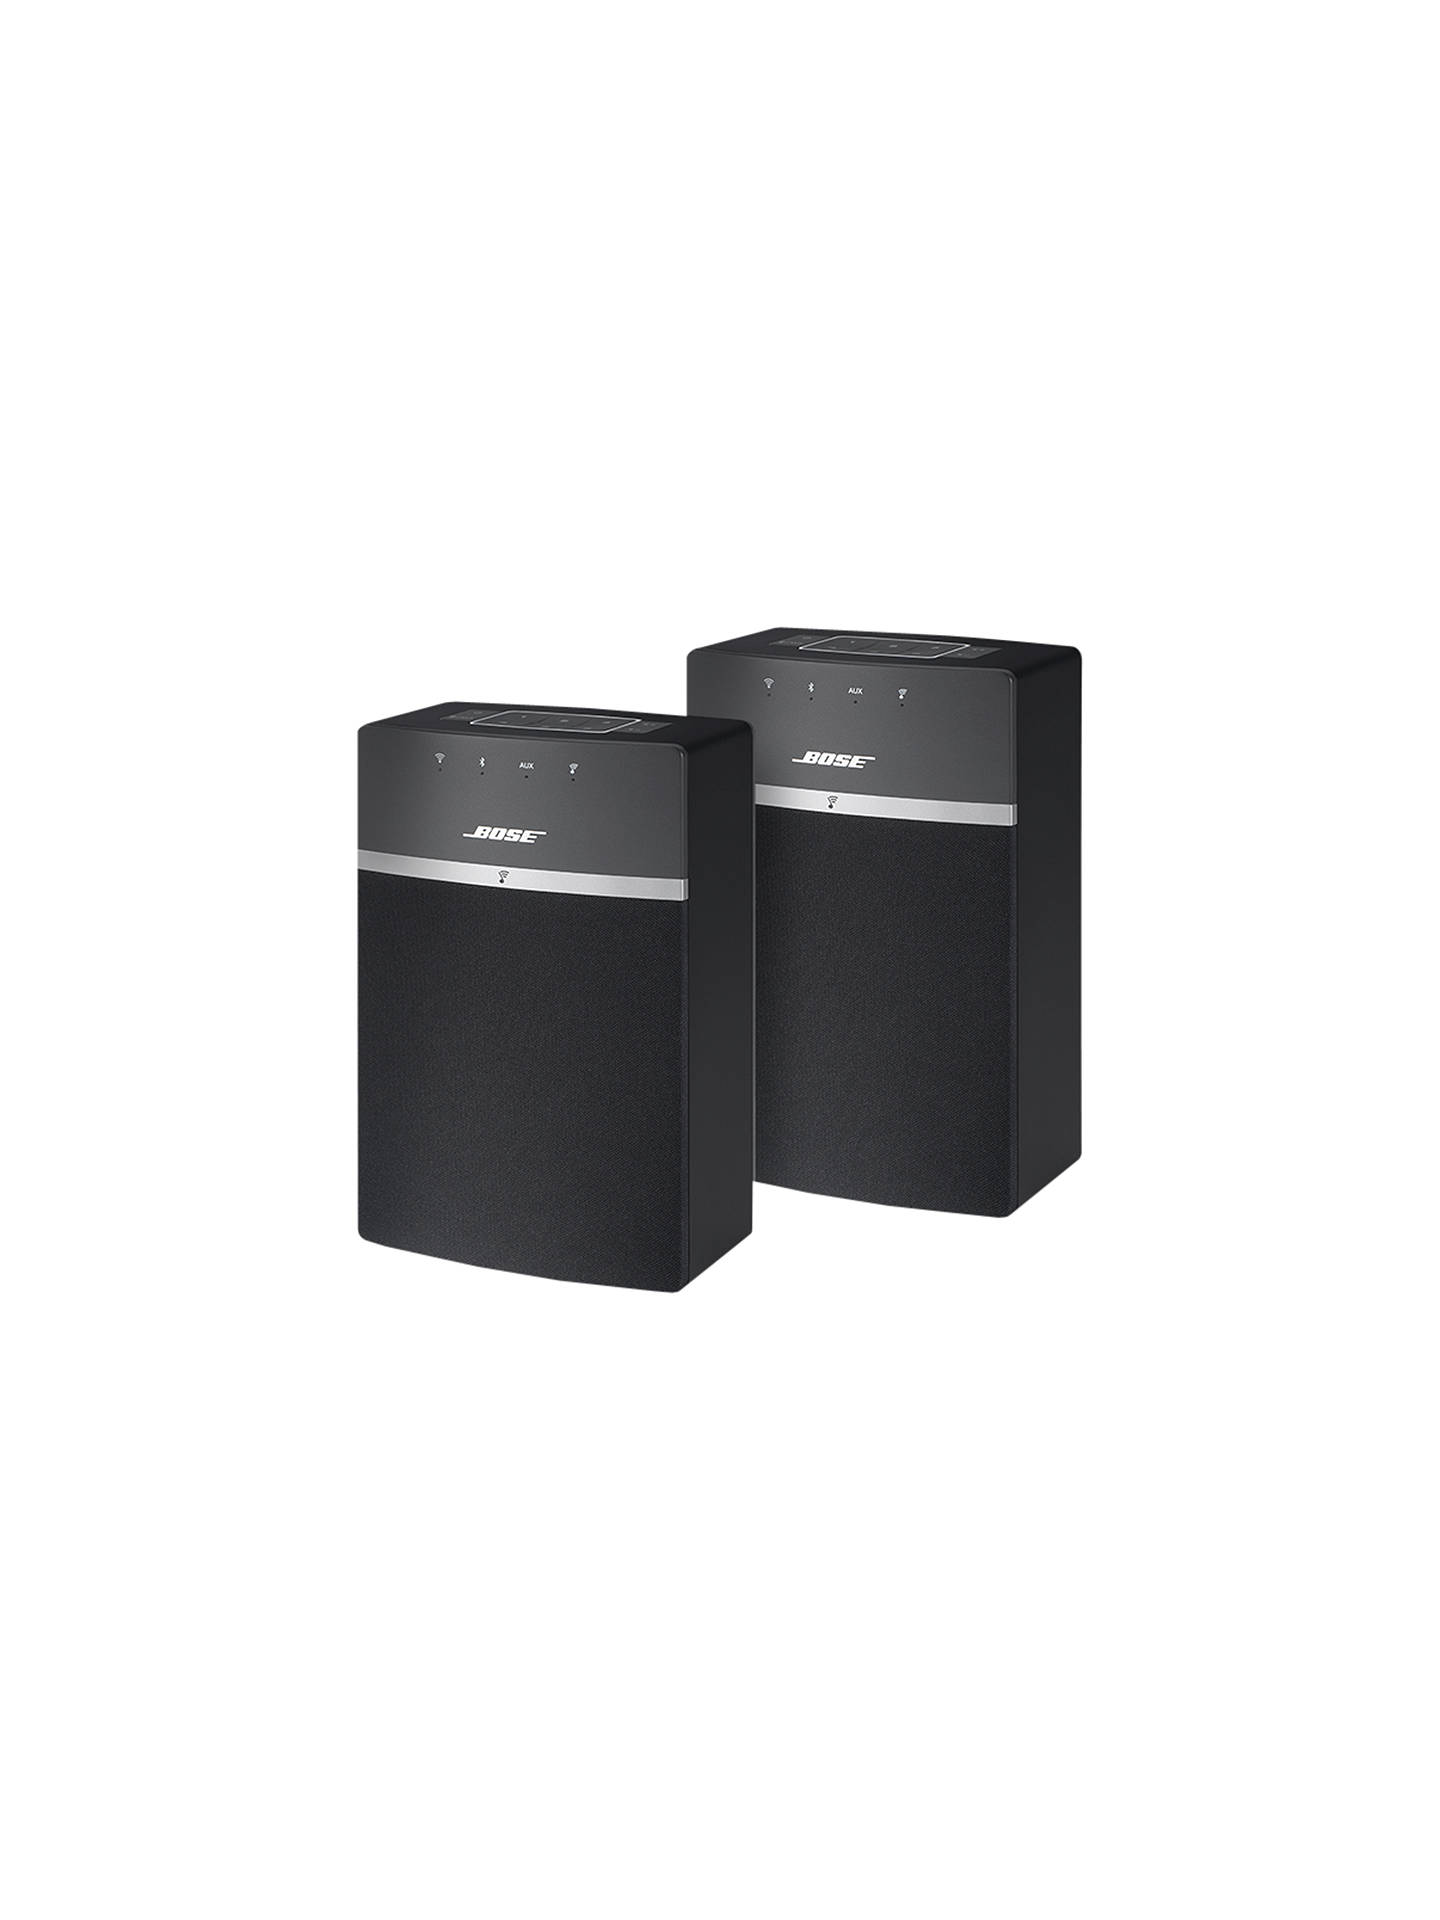 bose soundtouch 10 wireless wi fi bluetooth music system pack of 2 at john lewis partners. Black Bedroom Furniture Sets. Home Design Ideas